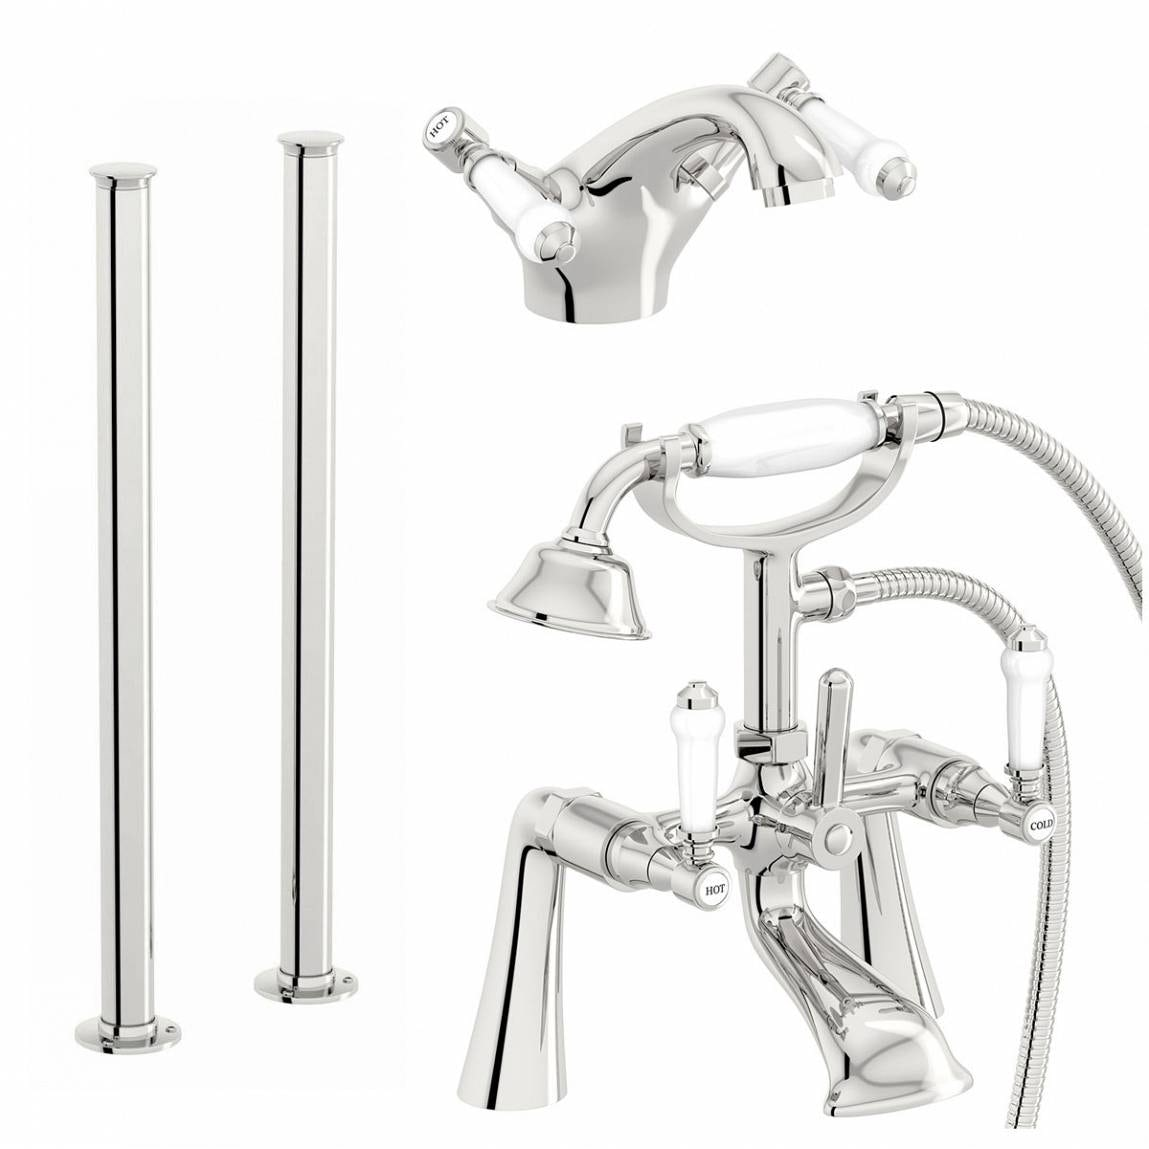 The Bath Co. Winchester basin and freestanding bath shower mixer tap pack